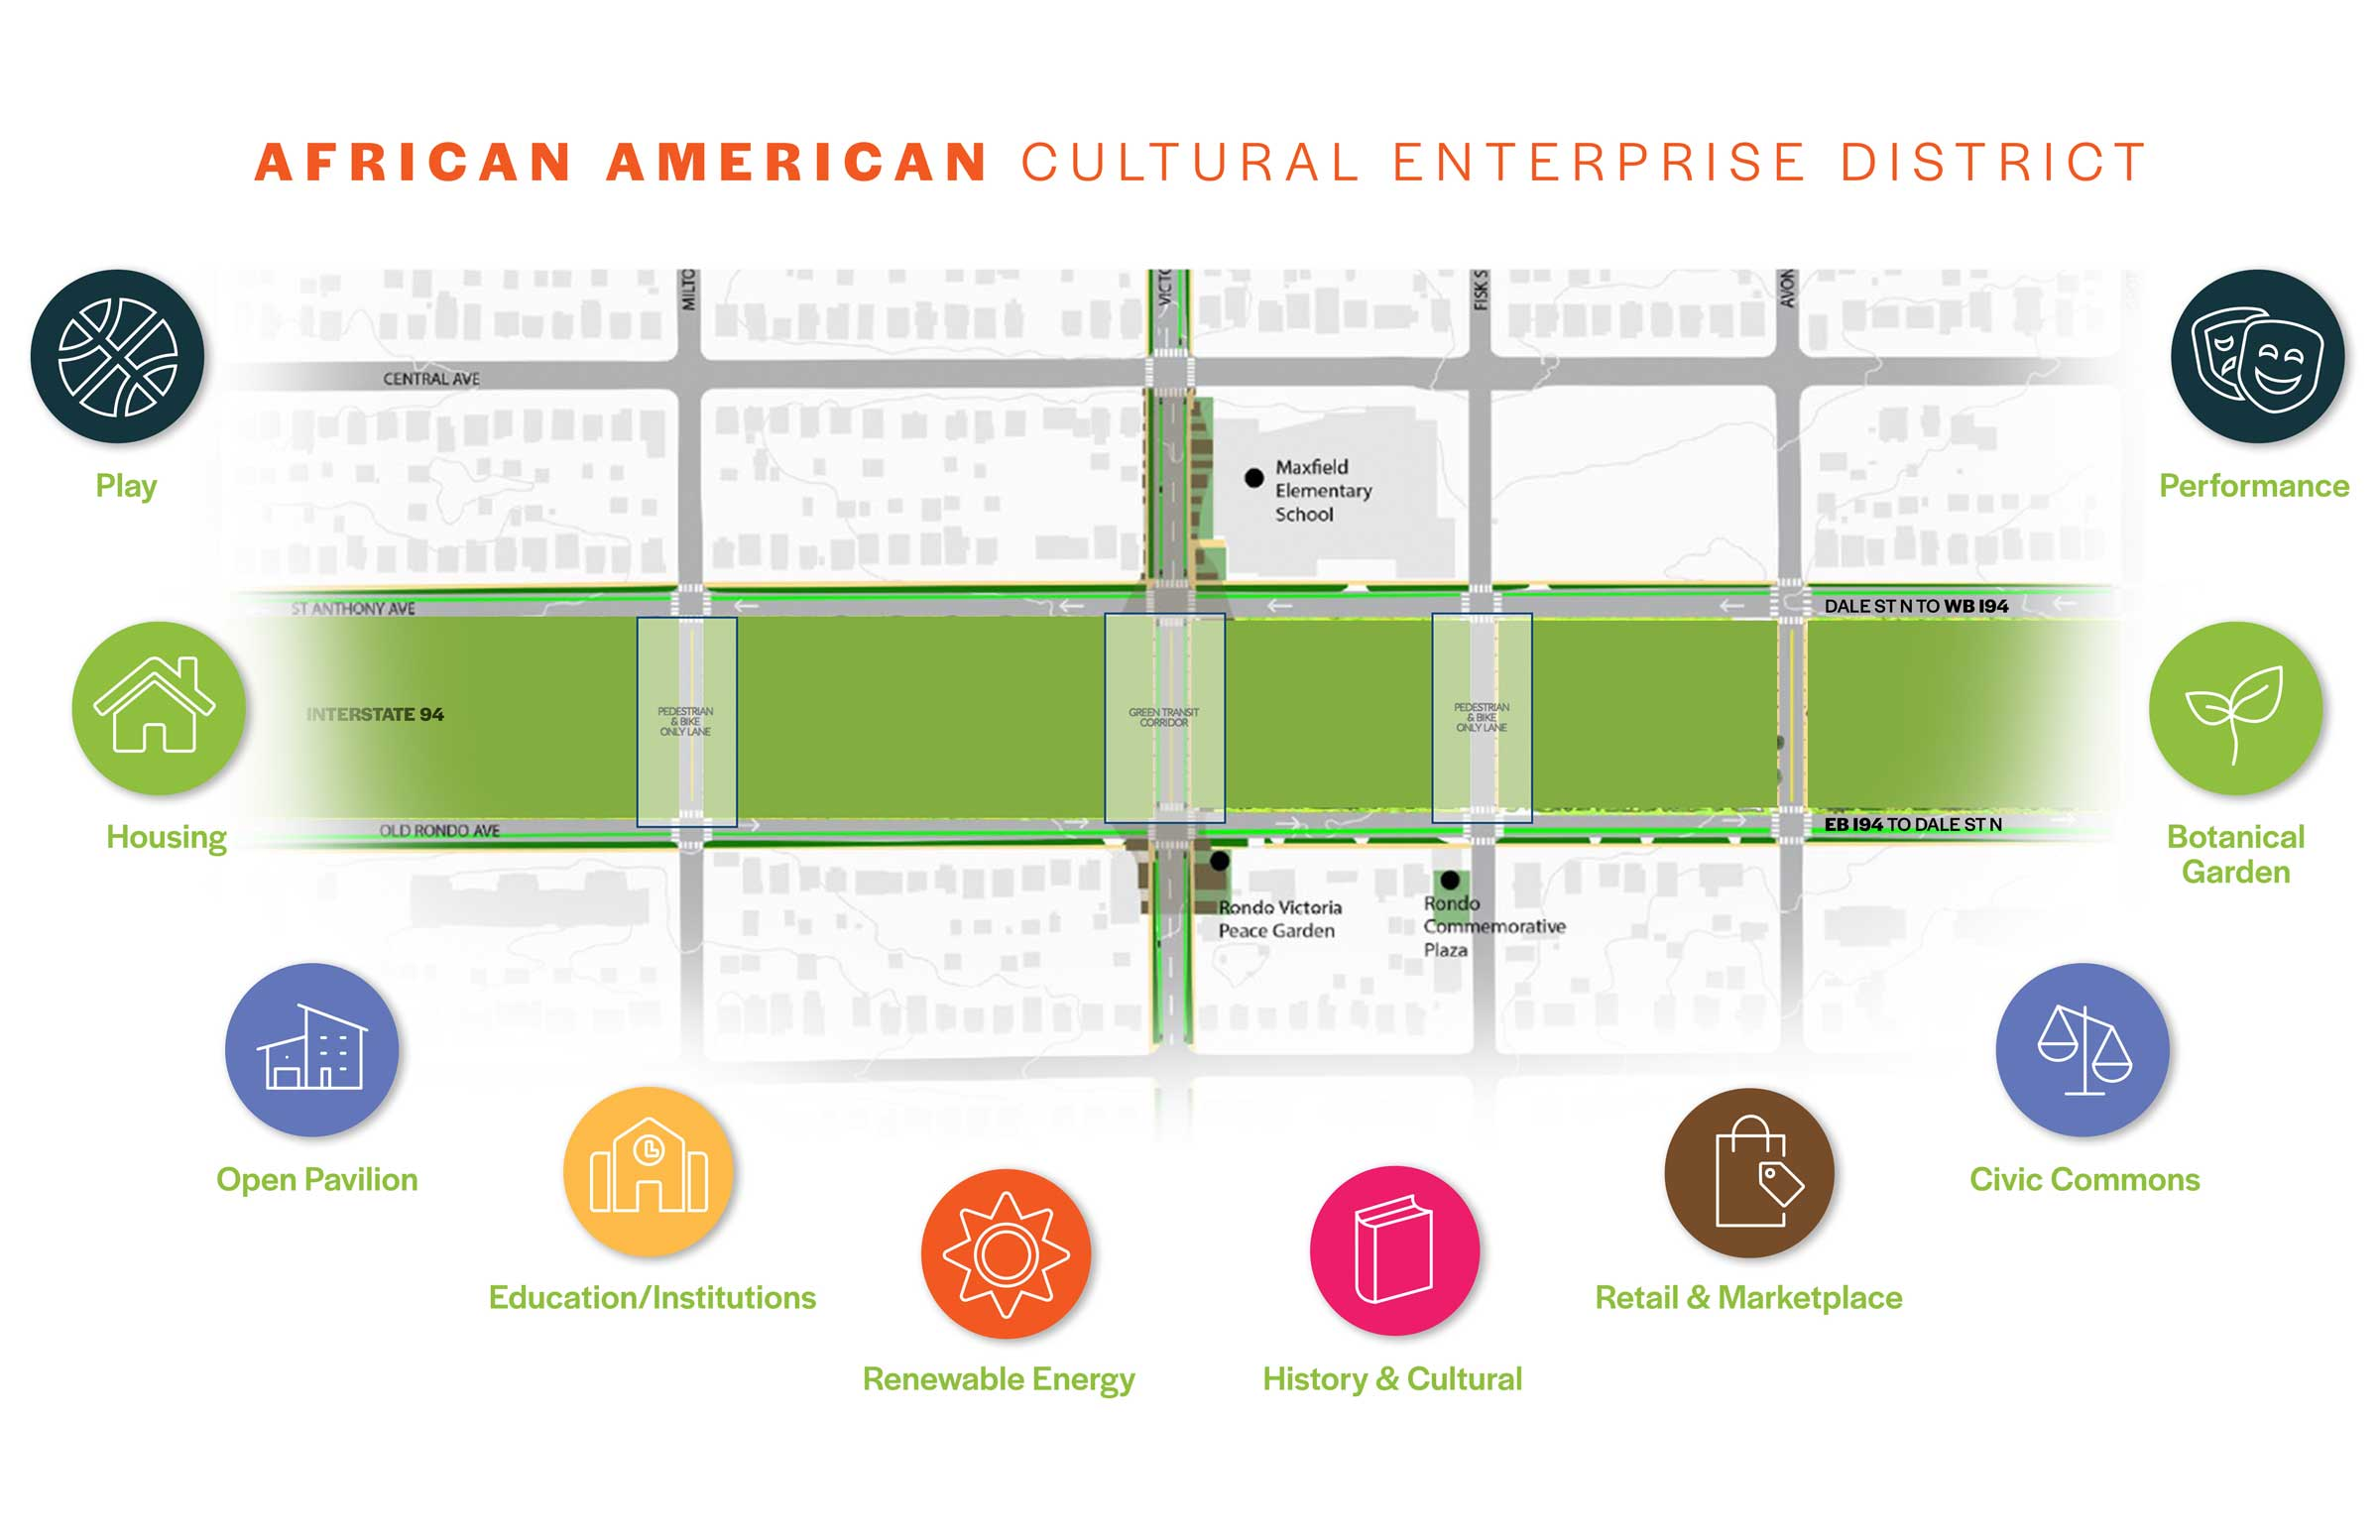 The African American Cultural Enterprise district could include parks, housing, and open pavillion, education/institutions, renewable energy, history & cultural centers, retail & marketplace, civic commons, a botanical garden, and performance areas.